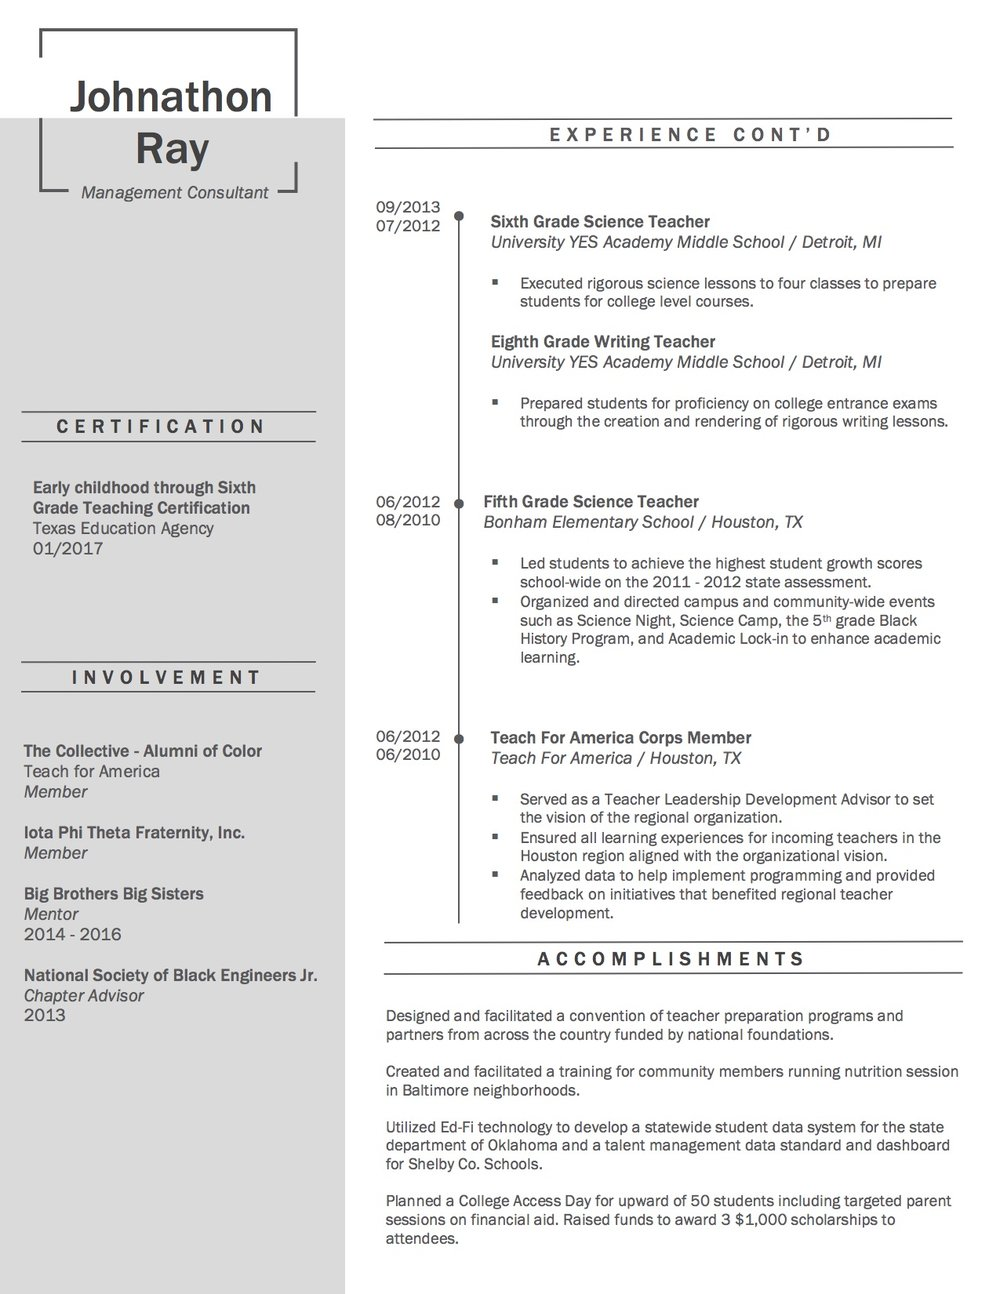 Client Resume #11 pg 2. Click to enlarge.